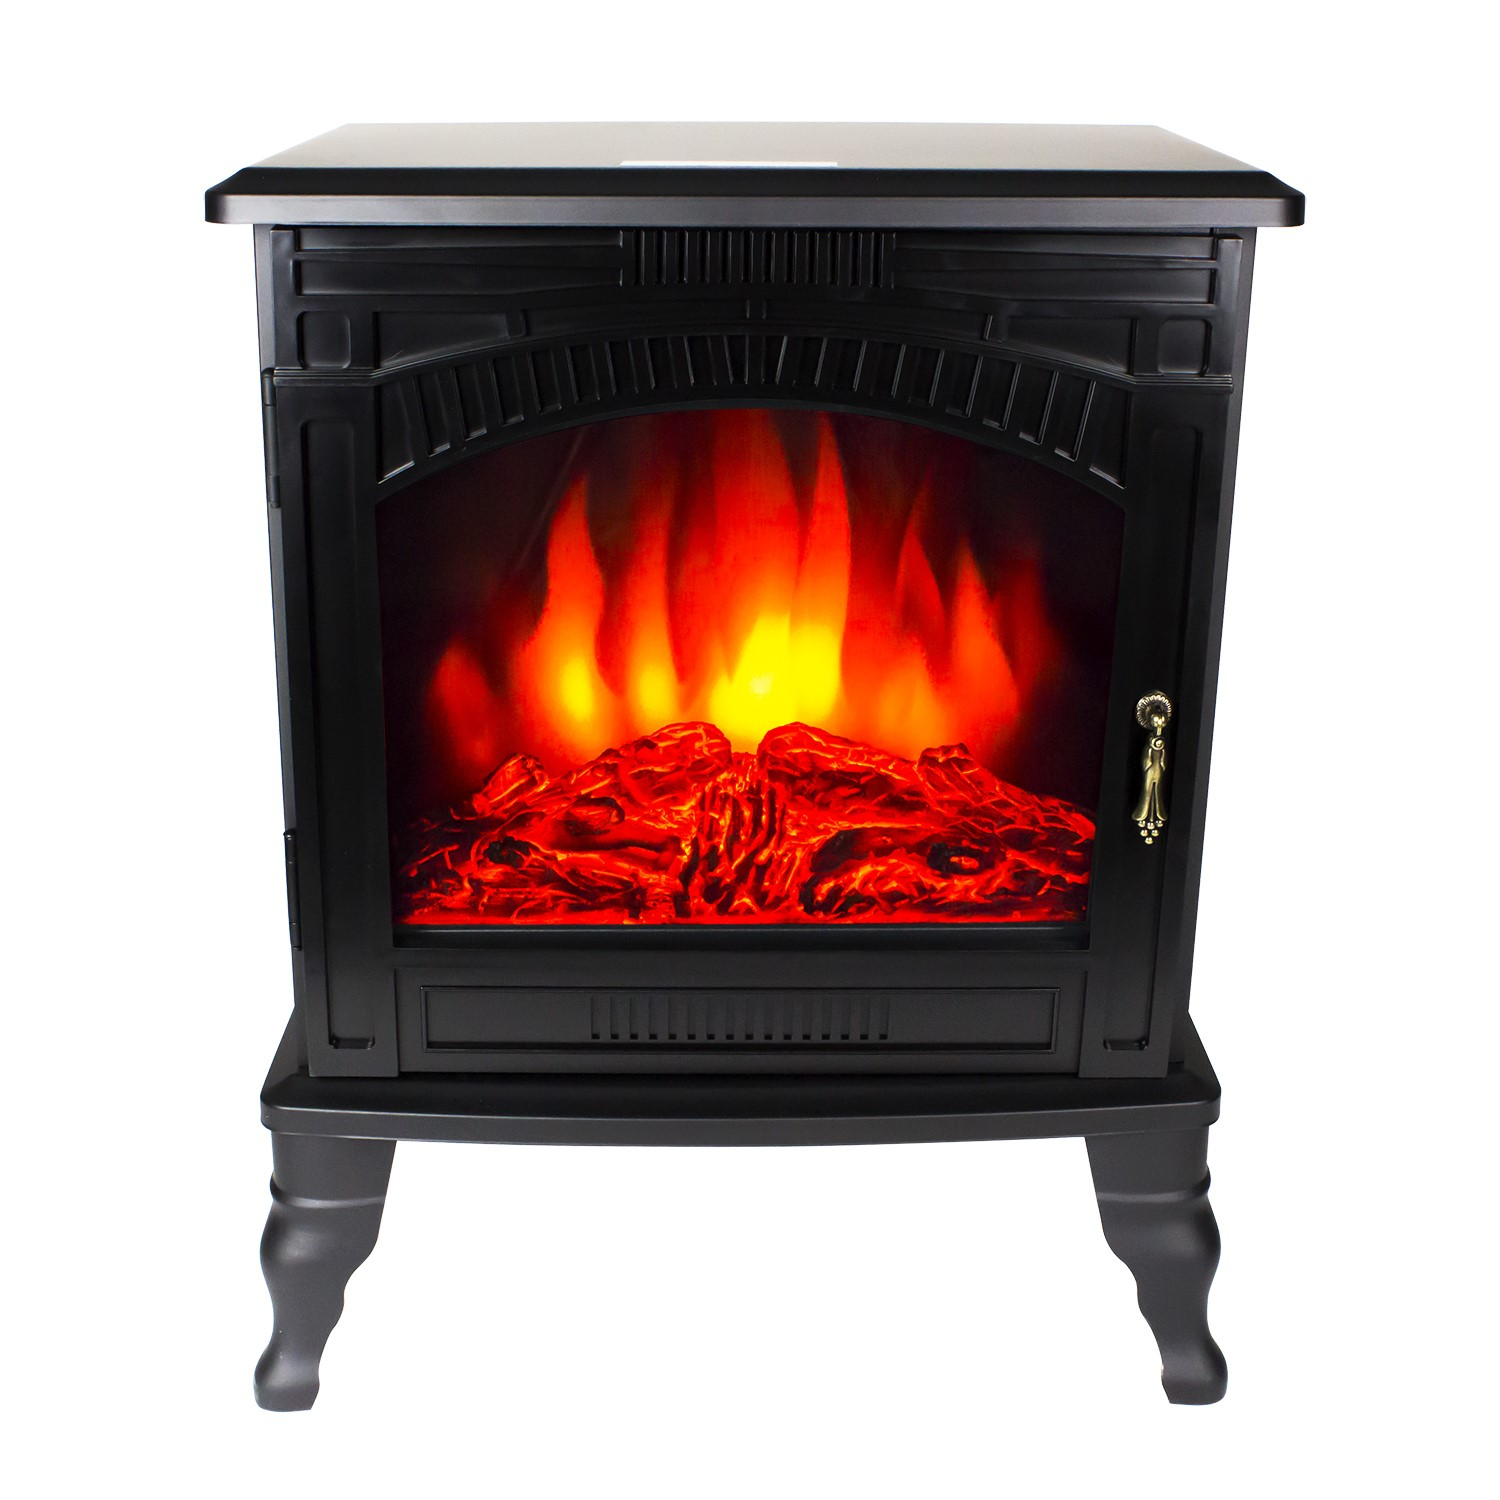 New Electric Fireplace Wood Flame Heater Stove Living Room